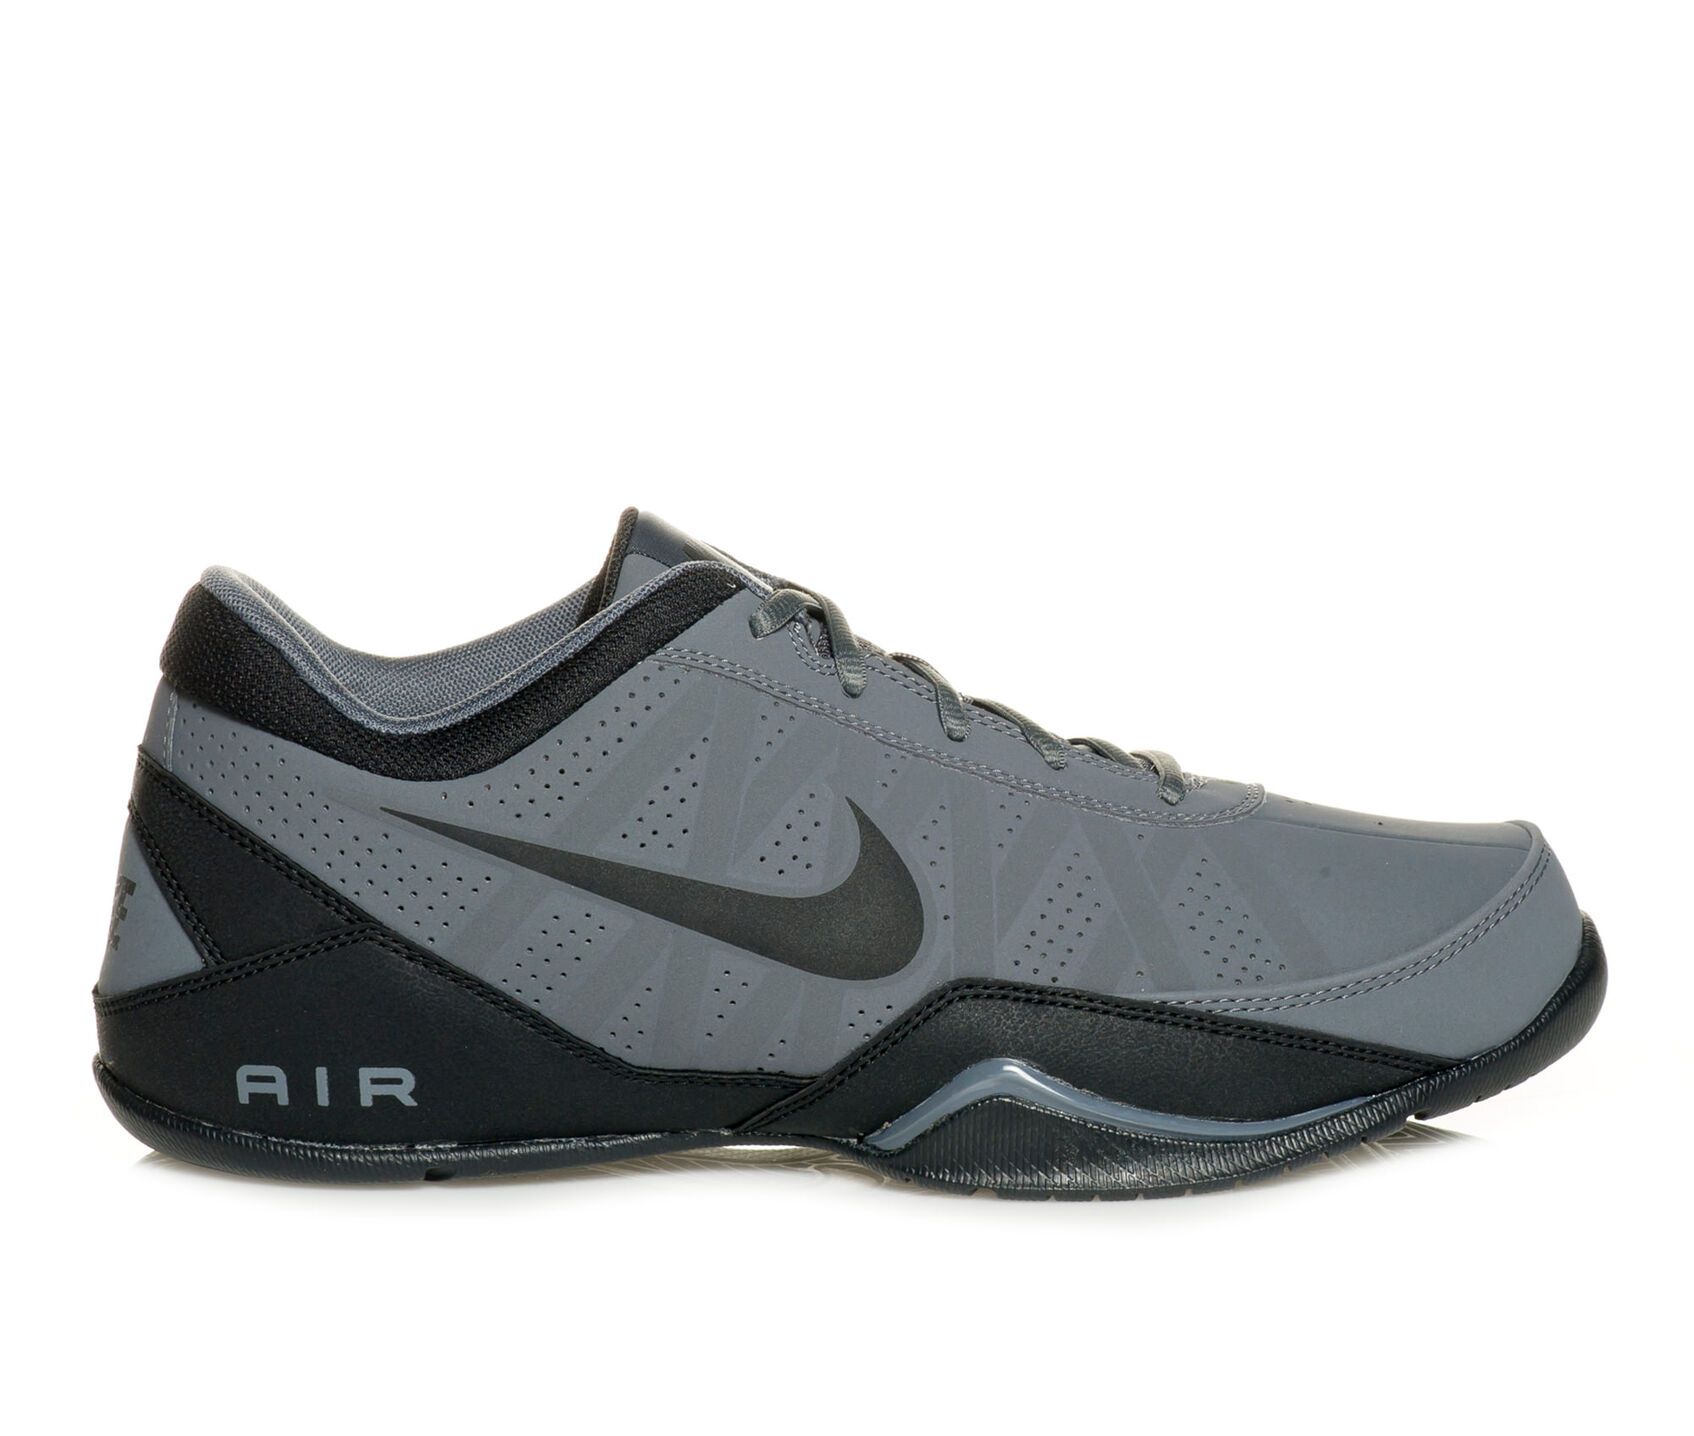 premium selection 54615 acba1 ... Nike Air Ring Leader Low Basketball Shoes. Previous